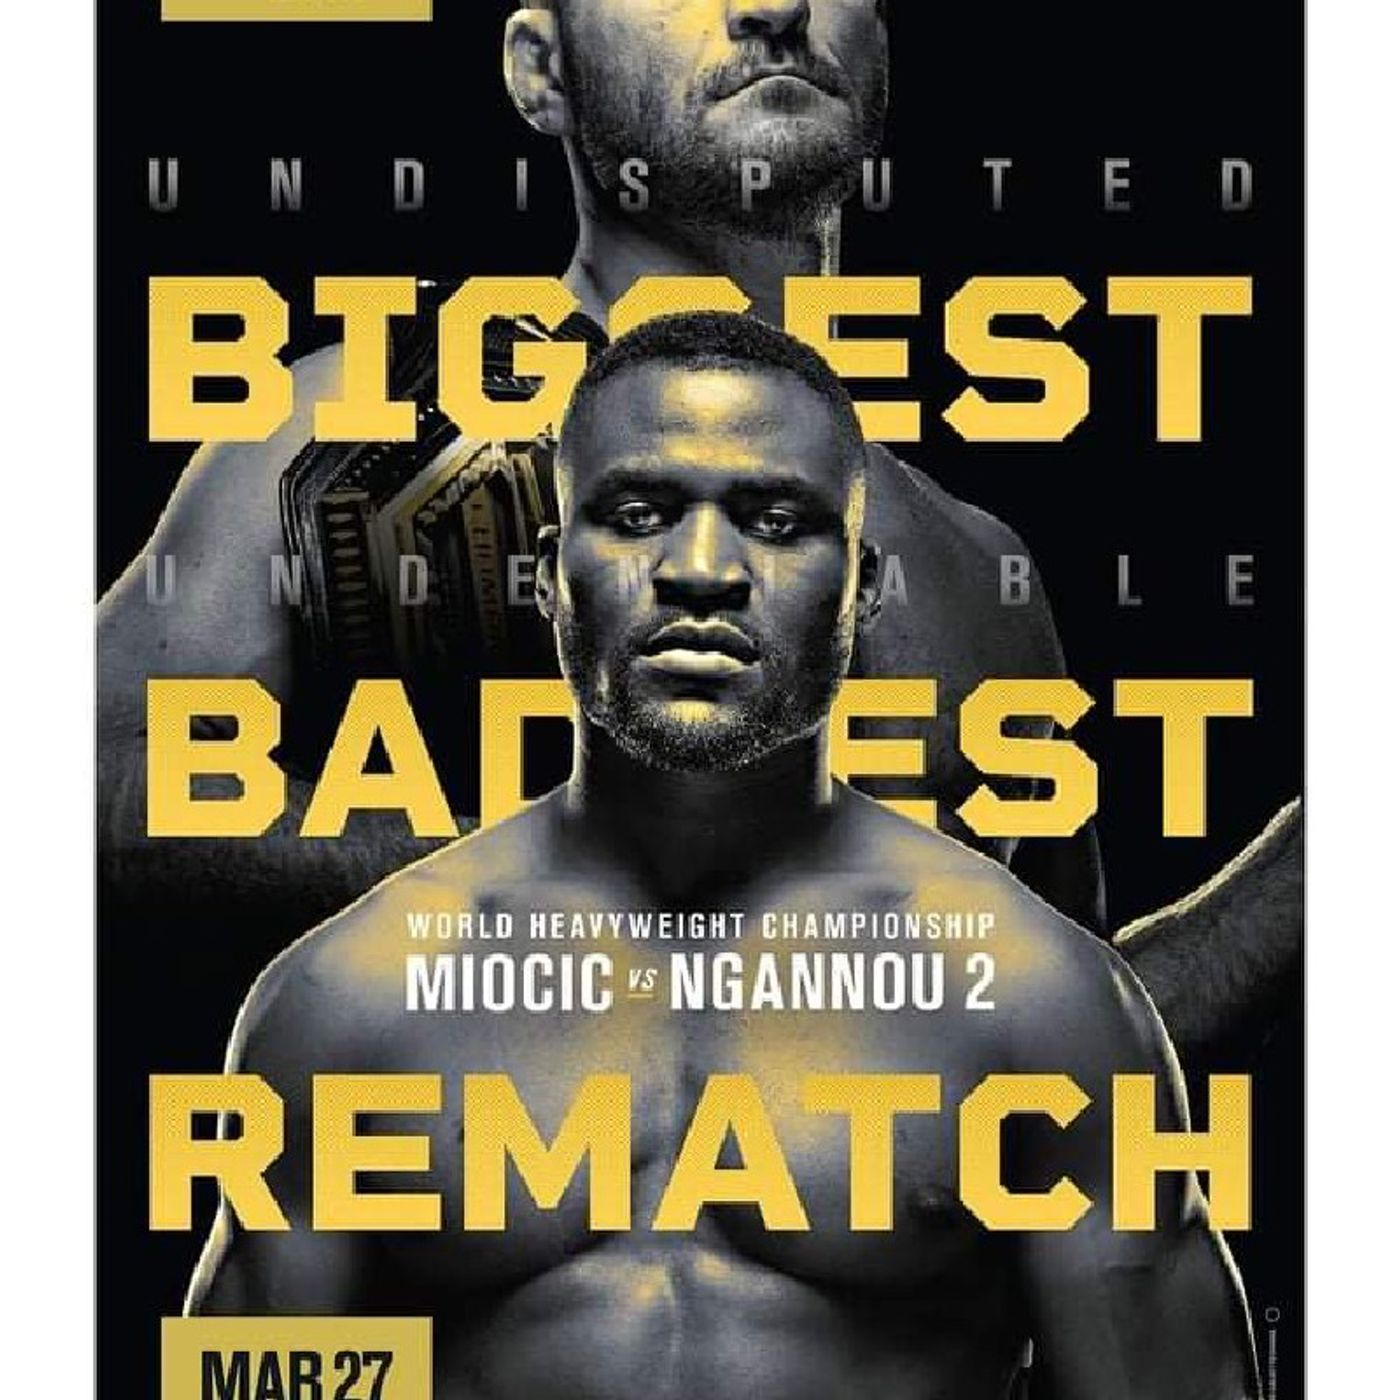 Preview Of UFC260 Headlined By Stipe Miocic Vs Francis Ngannou For The Heavyweight Title